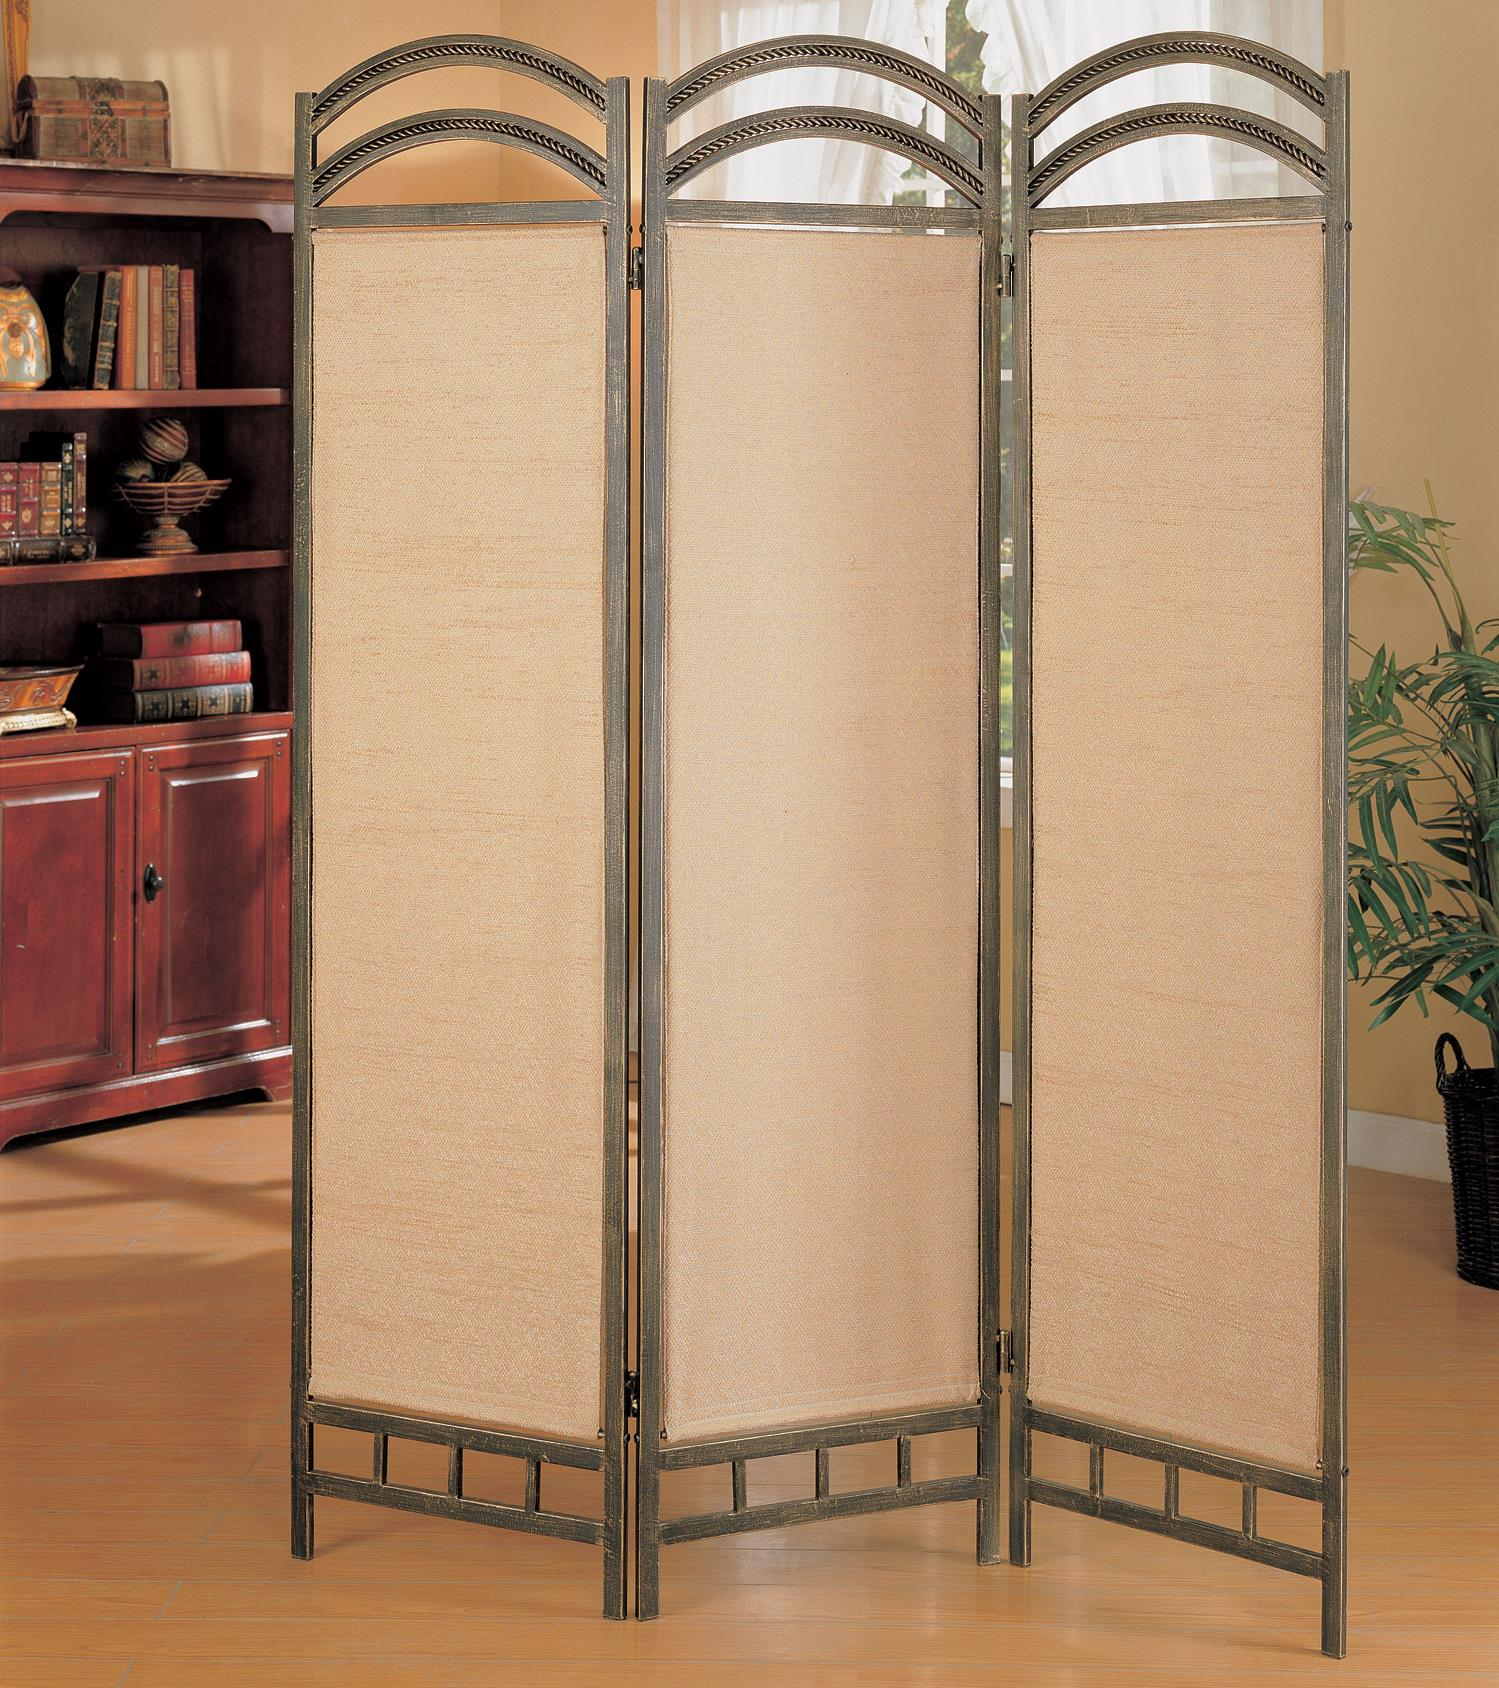 Coaster Folding Screens Screen - Item Number: 900106